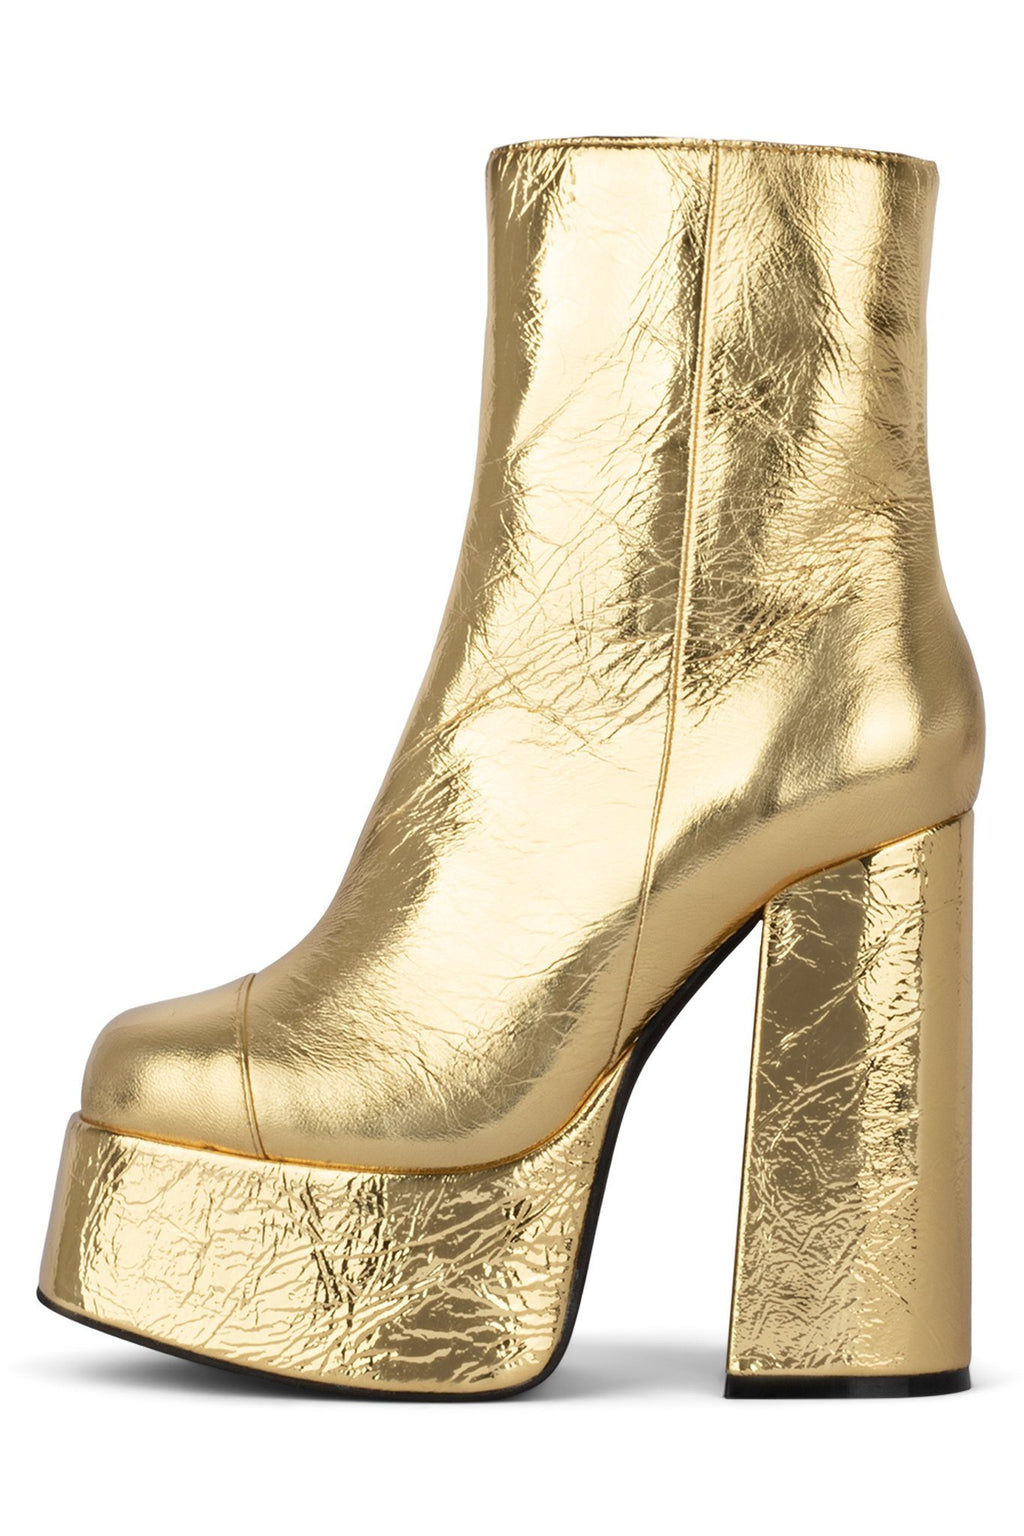 WIDOW-2NB Platform Boot HS Gold Crinkle 6